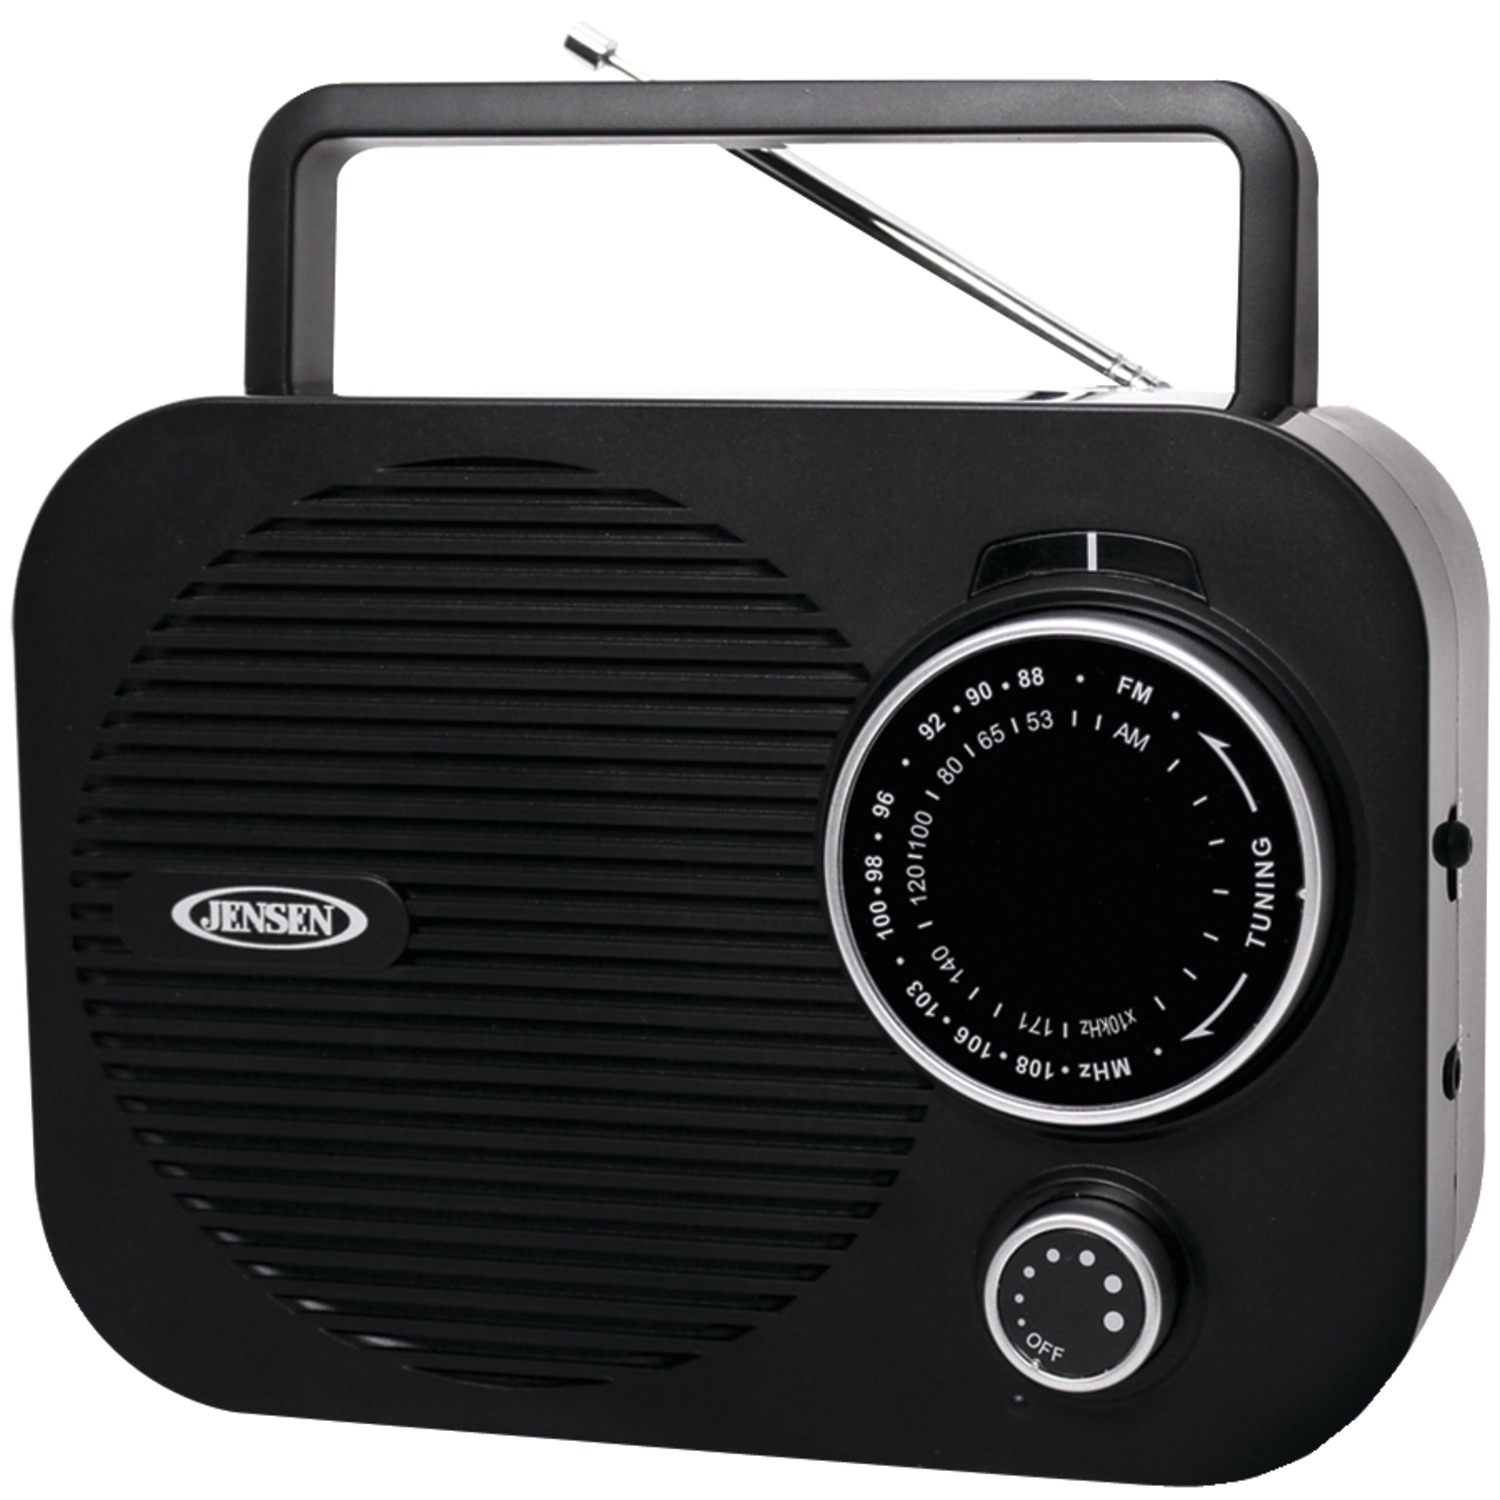 JENSEN MR-550-BK Portable AM FM Radio (Black) by Jensen